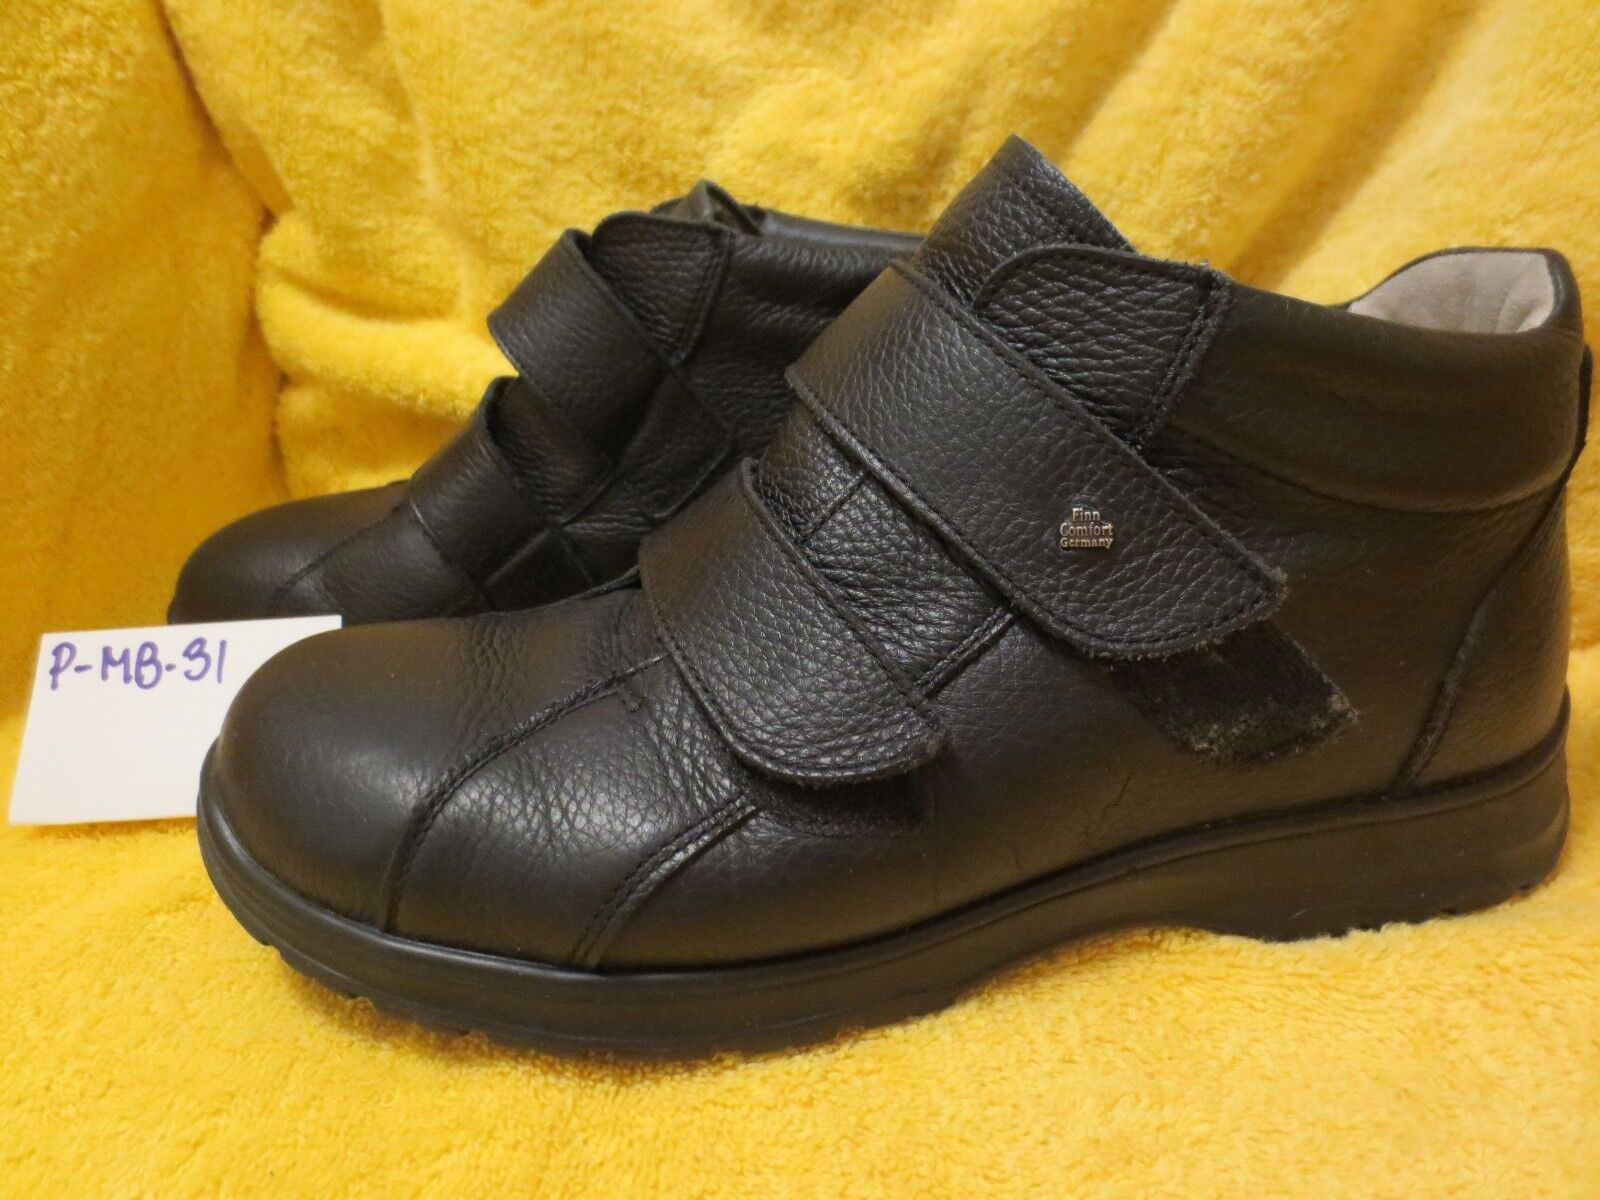 NEW ARRIVAL- FINN COMFORT BOOTS,LEATHER, 10 US Mens (9 1 2 UK) , P-MB-31